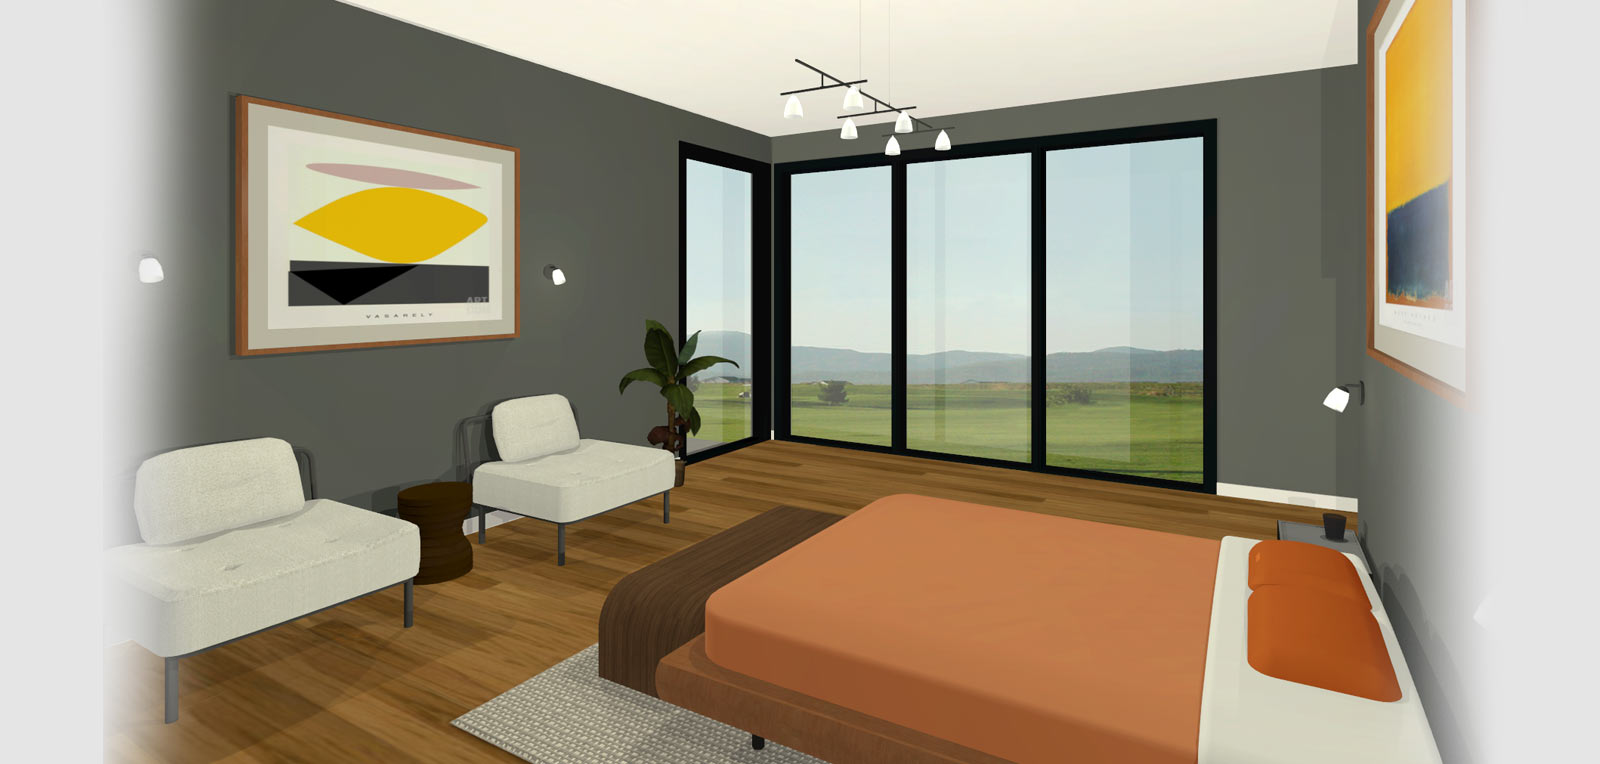 Free indian kitchen design software - Modern Master Bedroom Design Corner Window